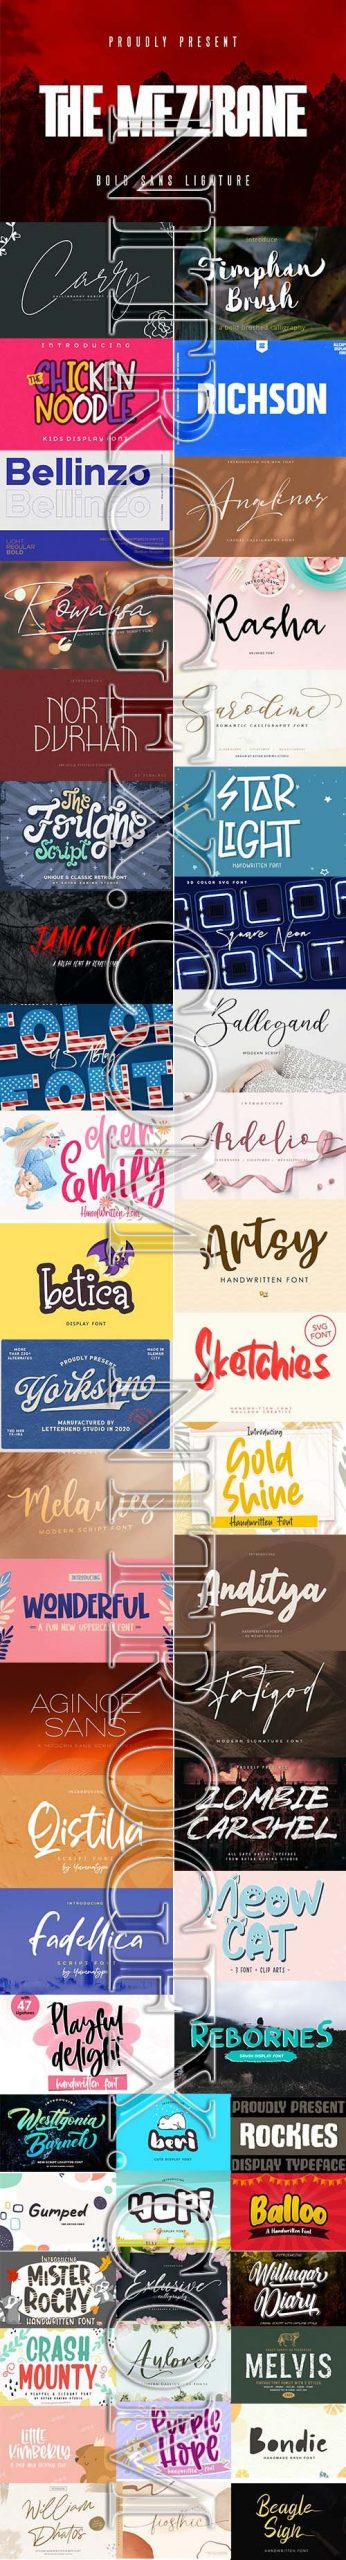 New Creative Fonts 2020 - More 50 Font in 1 Pack!